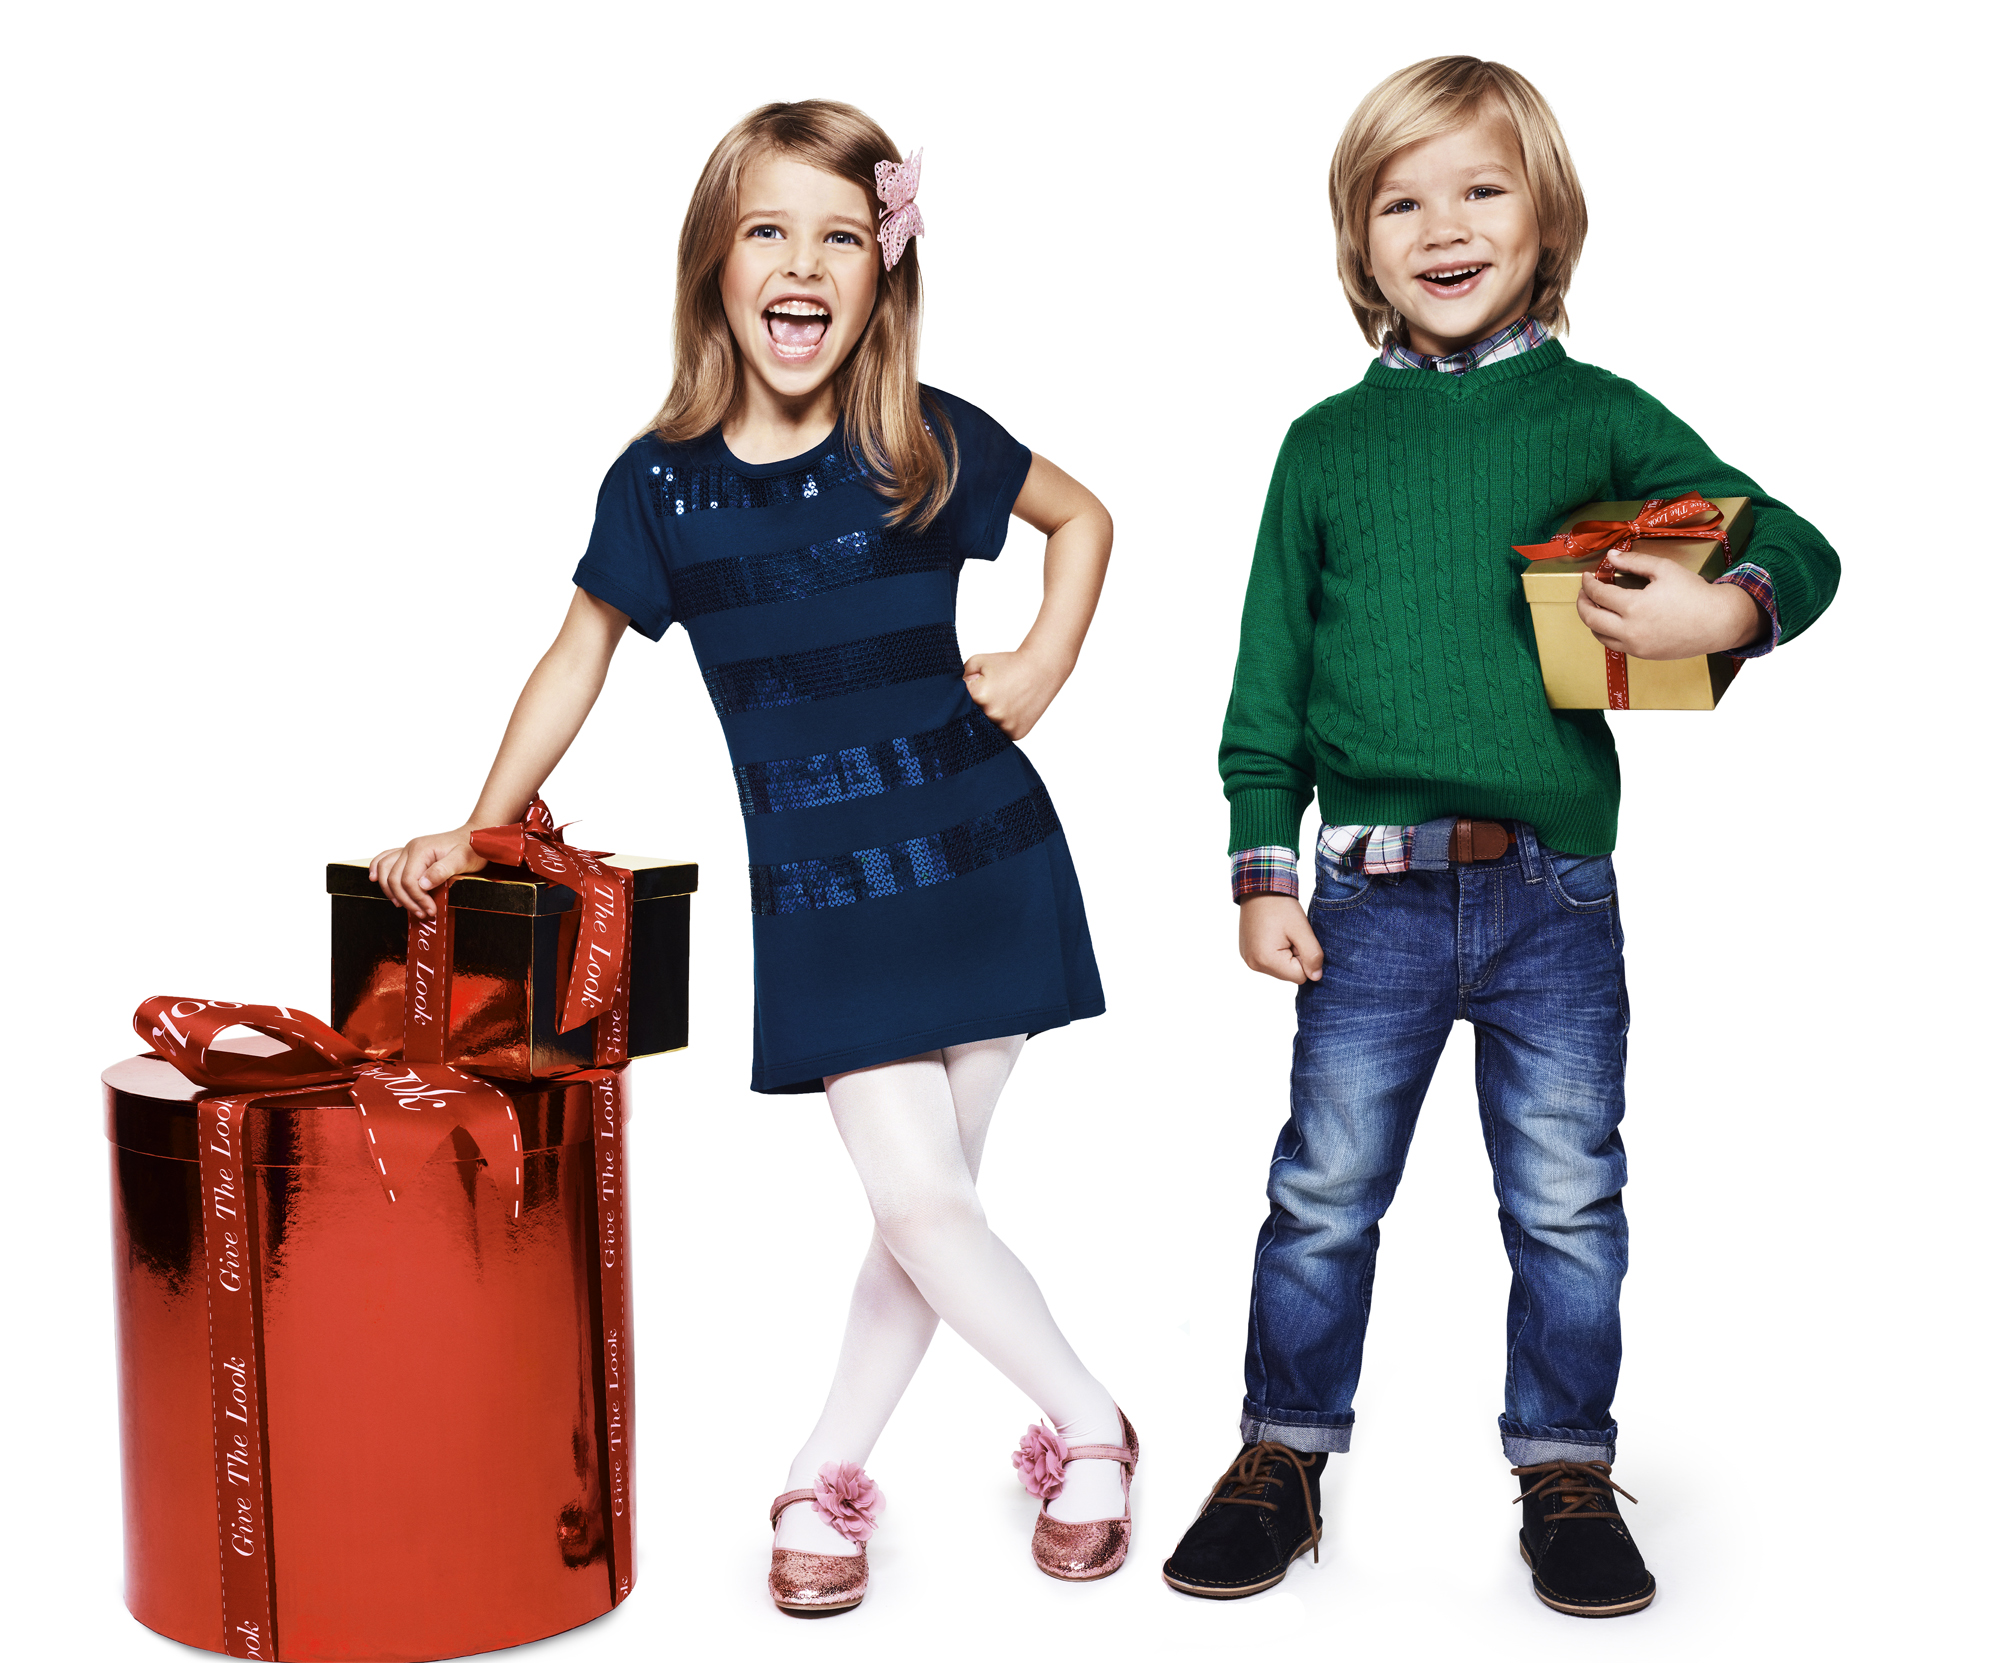 Christmas Kids Clothing & Accessories from CafePress are professionally printed and made of the best materials in a wide range of colors and sizes.